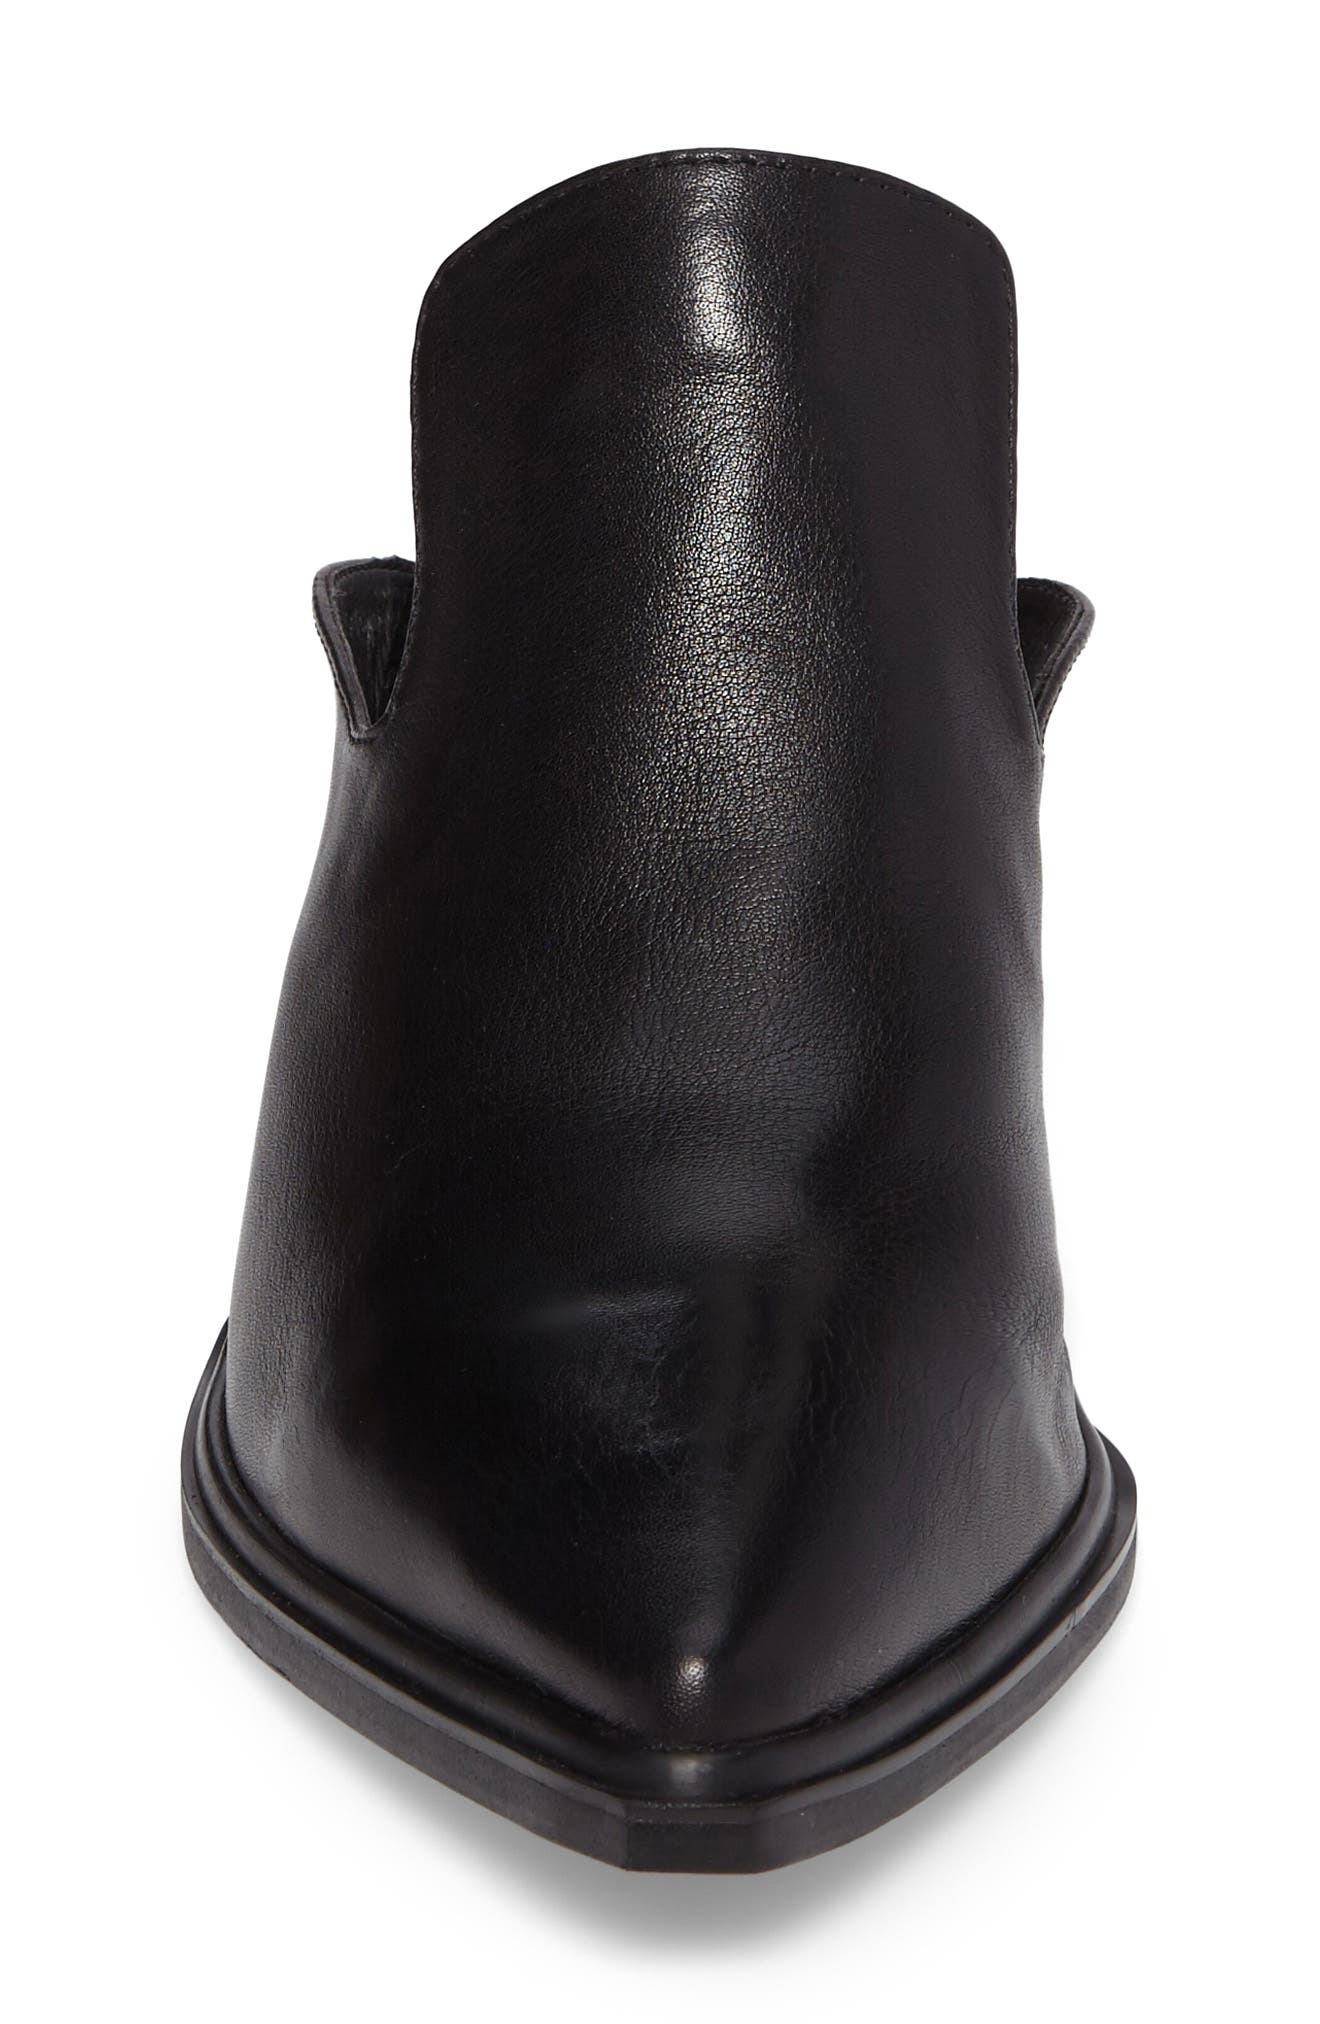 Mulah Pointy Toe Mule,                             Alternate thumbnail 4, color,                             Black Leather